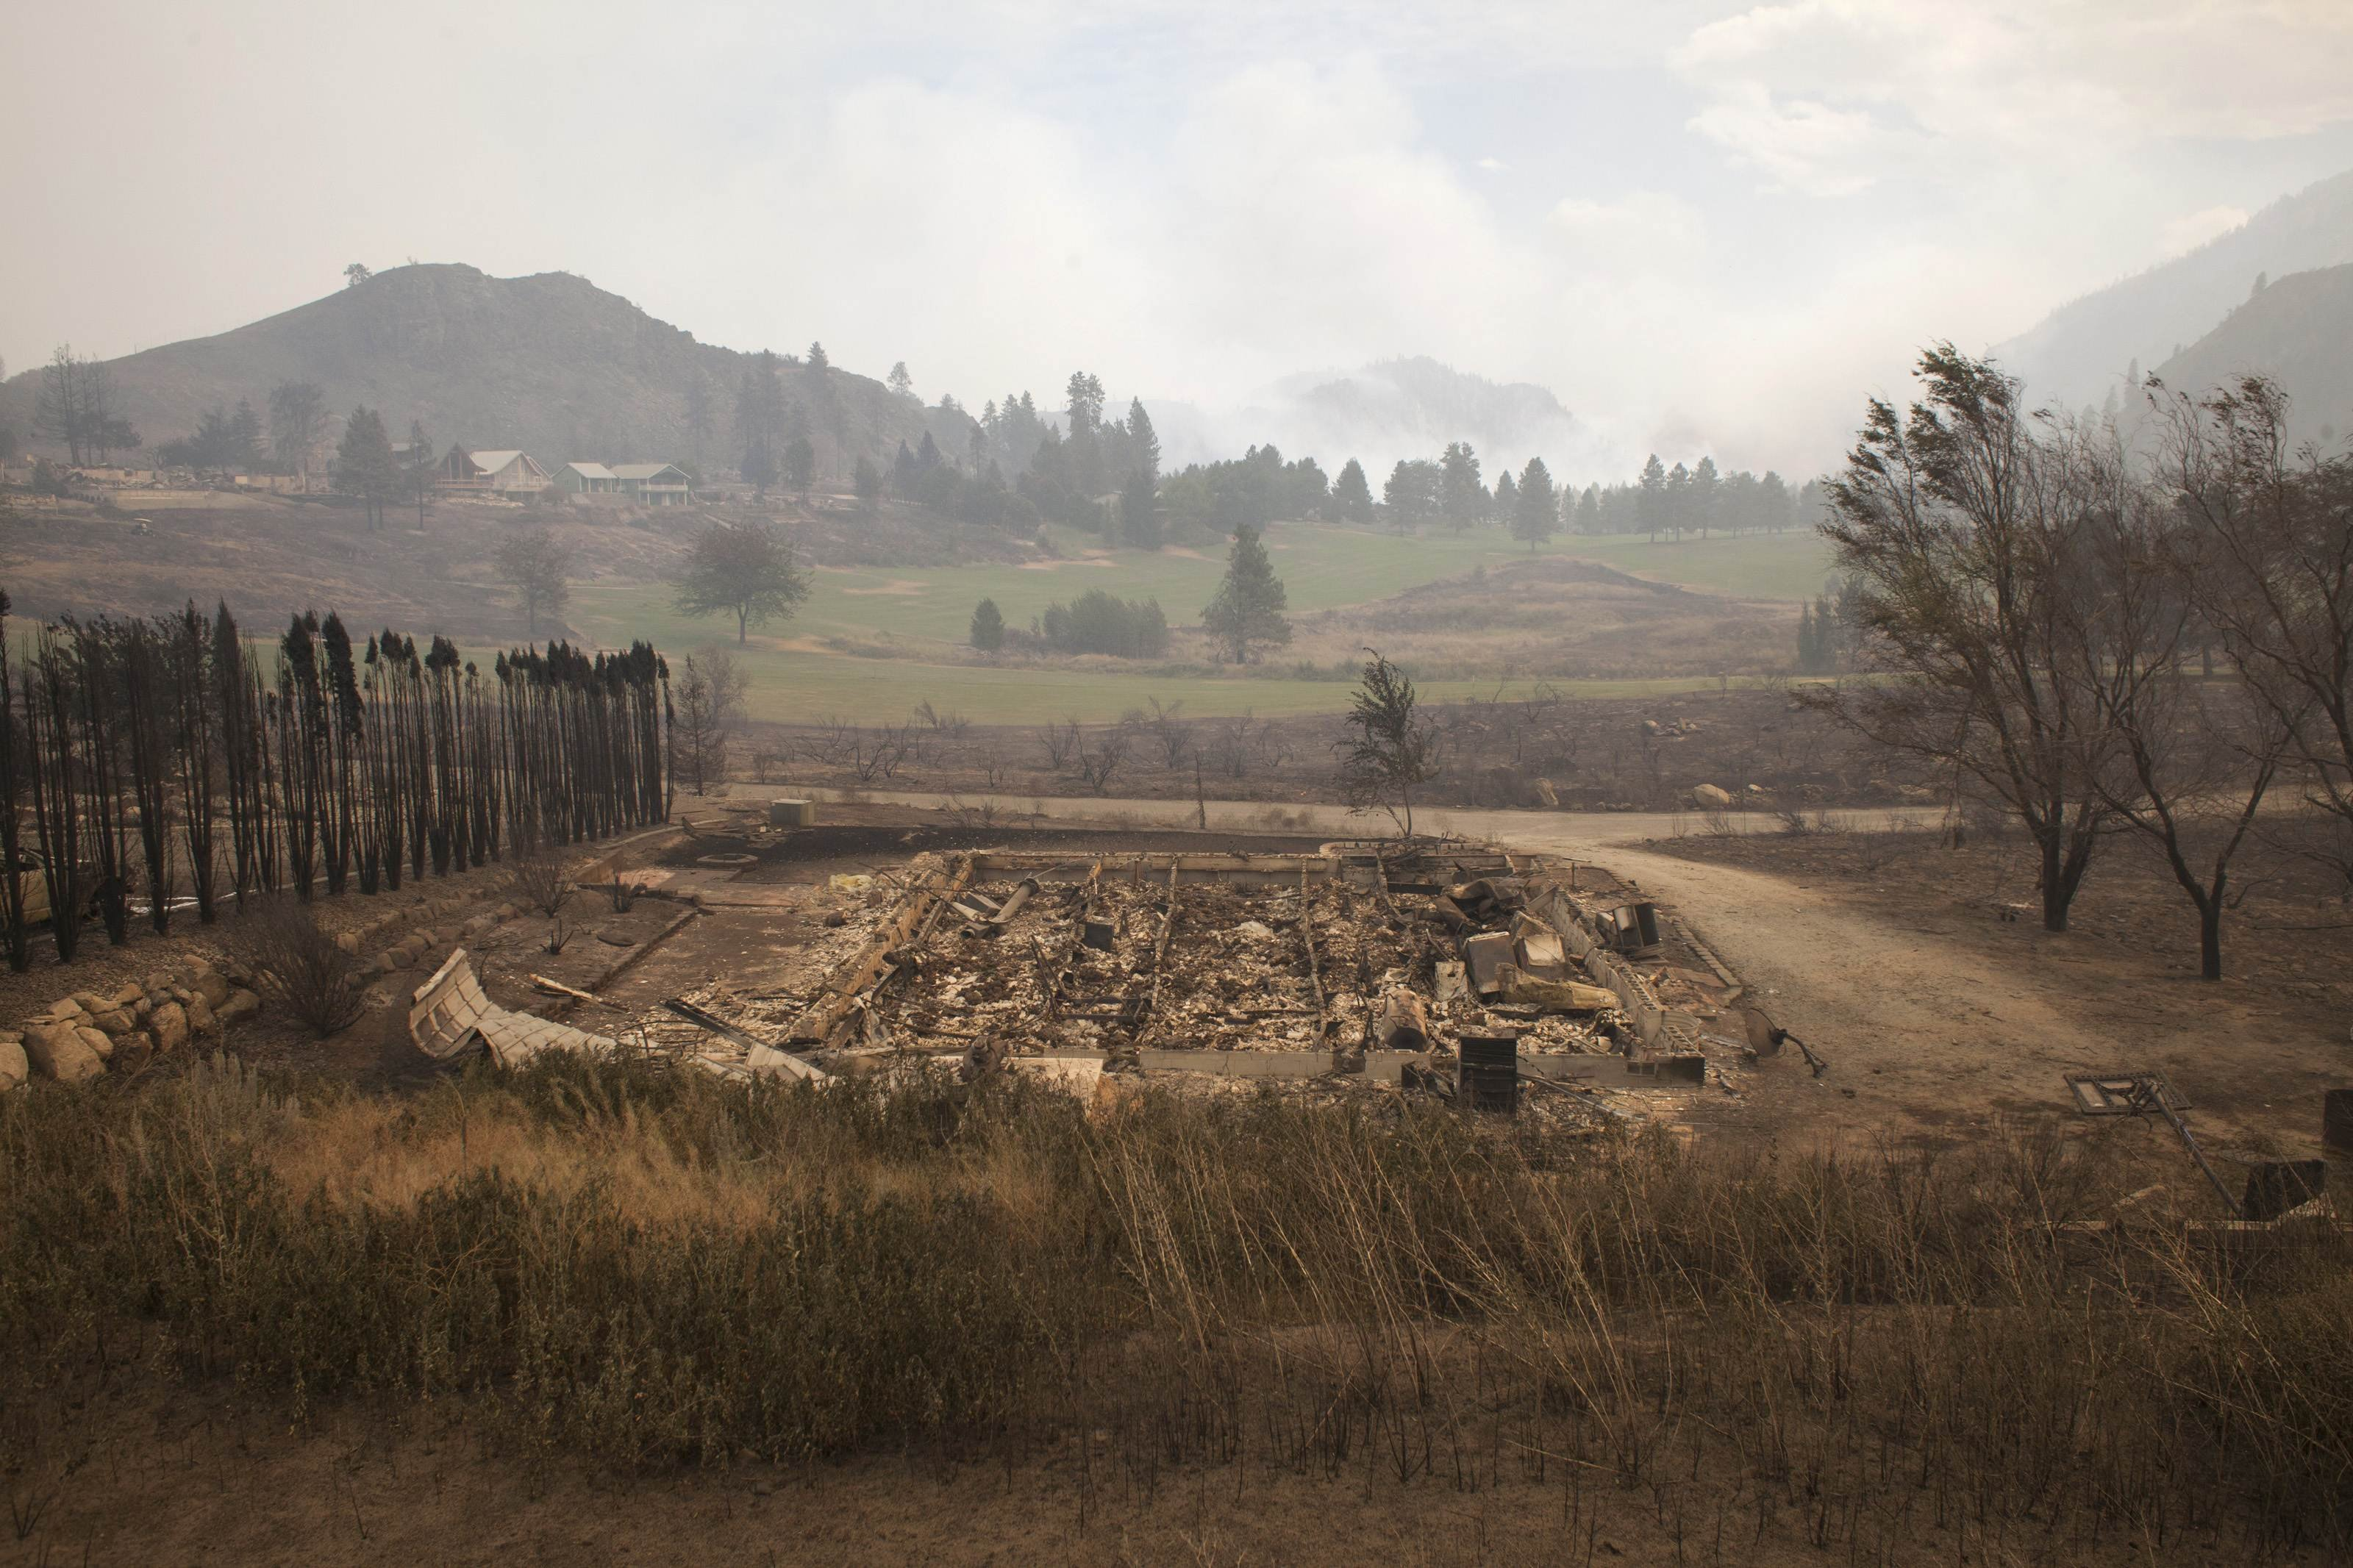 Debris from a burnt structure is pictured near Alta Lake Golf Course after much of the surrounding area was consumed by the Carlton Complex Fire near Pateros, Washington on July 19, 2014.